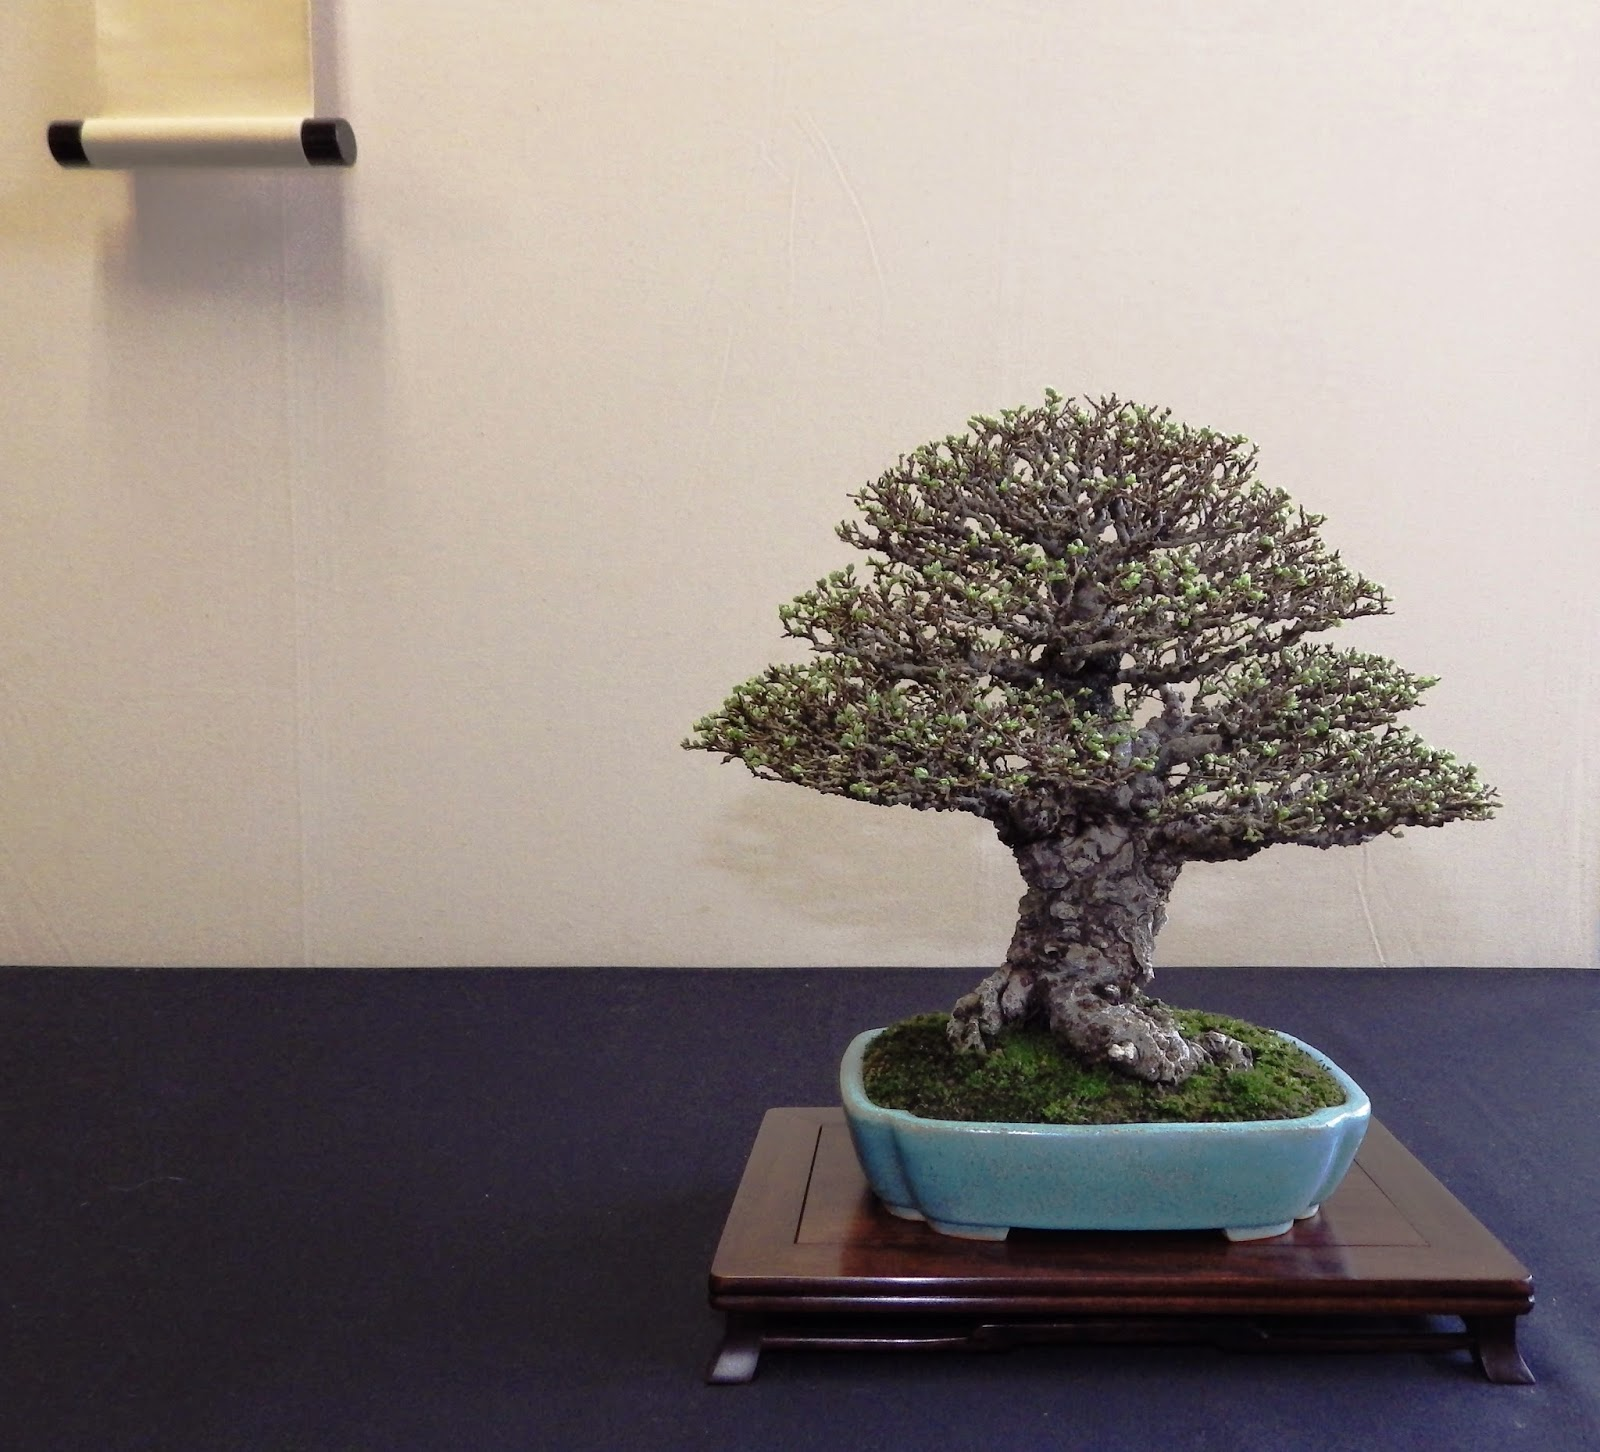 Bespoke Bonsai Stands March 2015